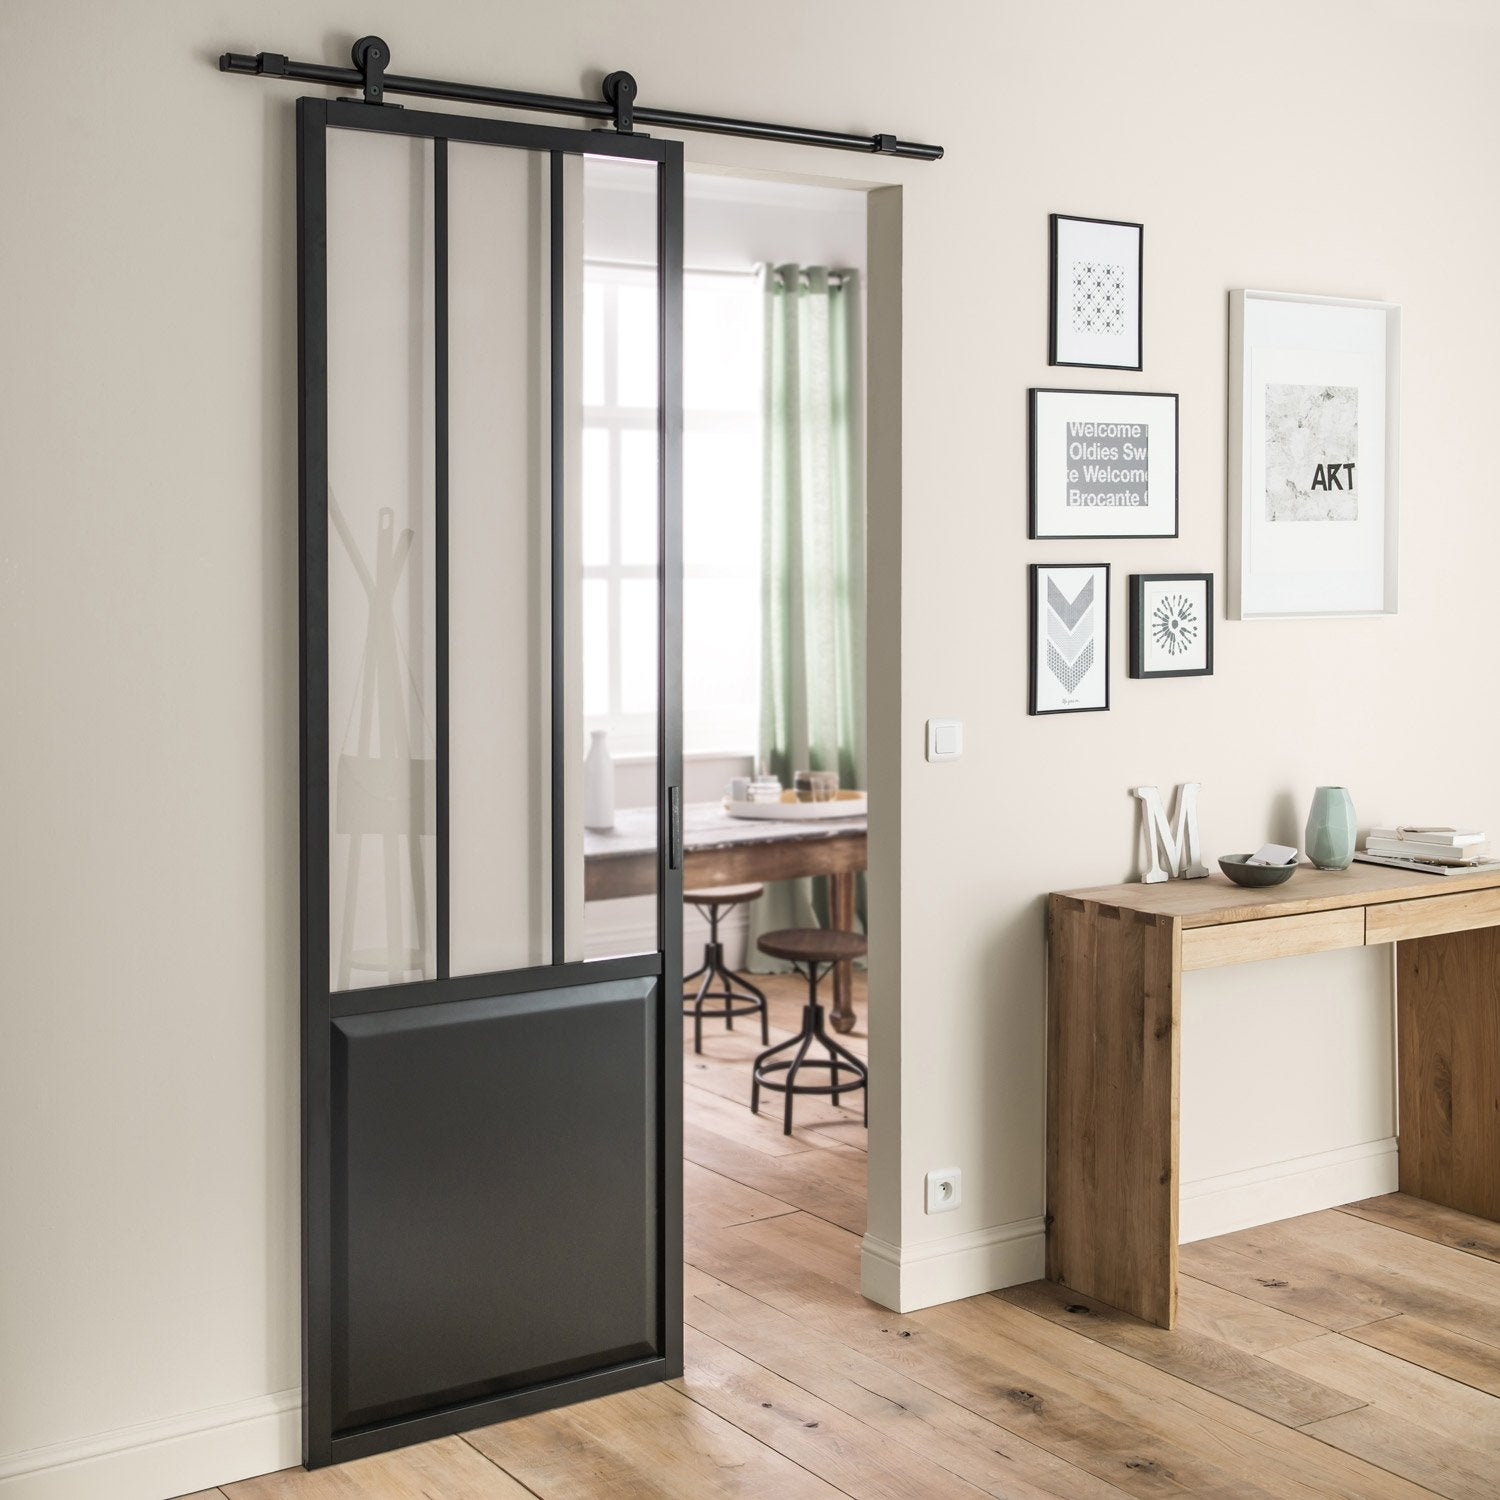 Ensemble porte coulissante atelier mdf rev tu avec le rail for Portes coulissantes japonaises